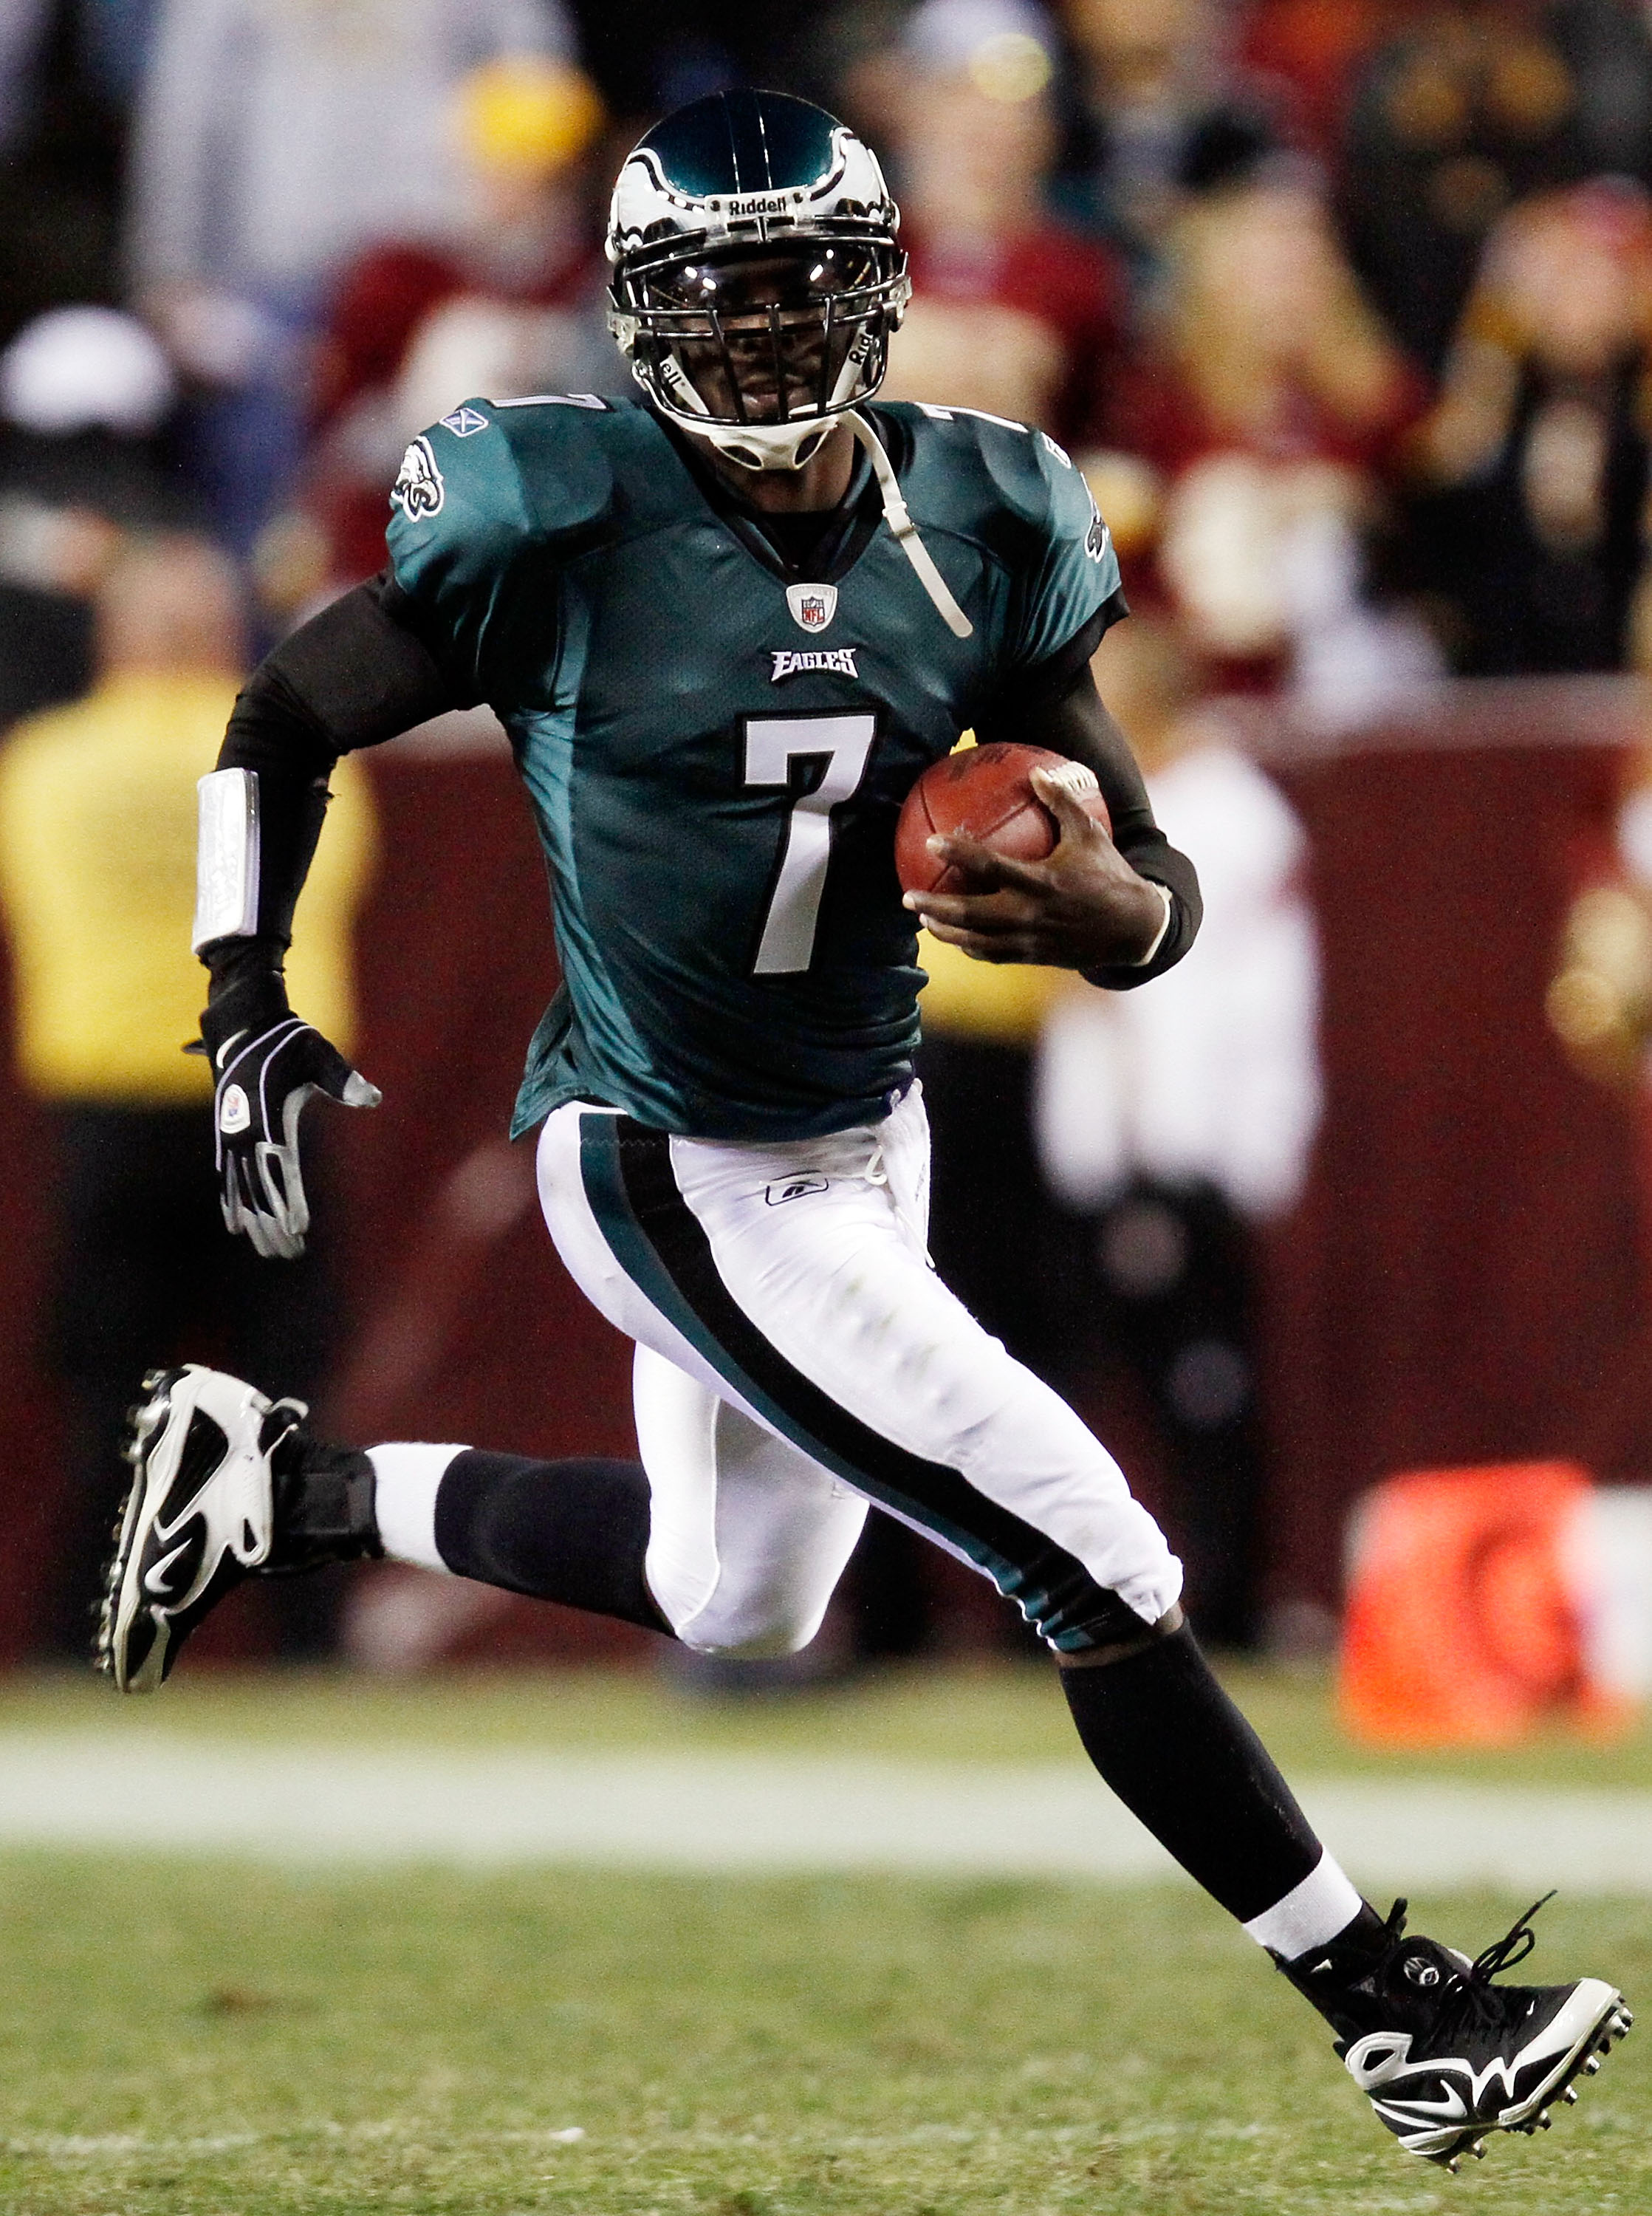 LANDOVER, MD - OCTOBER 26:  Michael Vick #7 of the Philadelphia Eagles runs the ball against the Washington Redskins at FedEx Field October 26, 2009 in Landover, Maryland.  The Eagles won the game 27-17.  (Photo by Win McNamee/Getty Images)